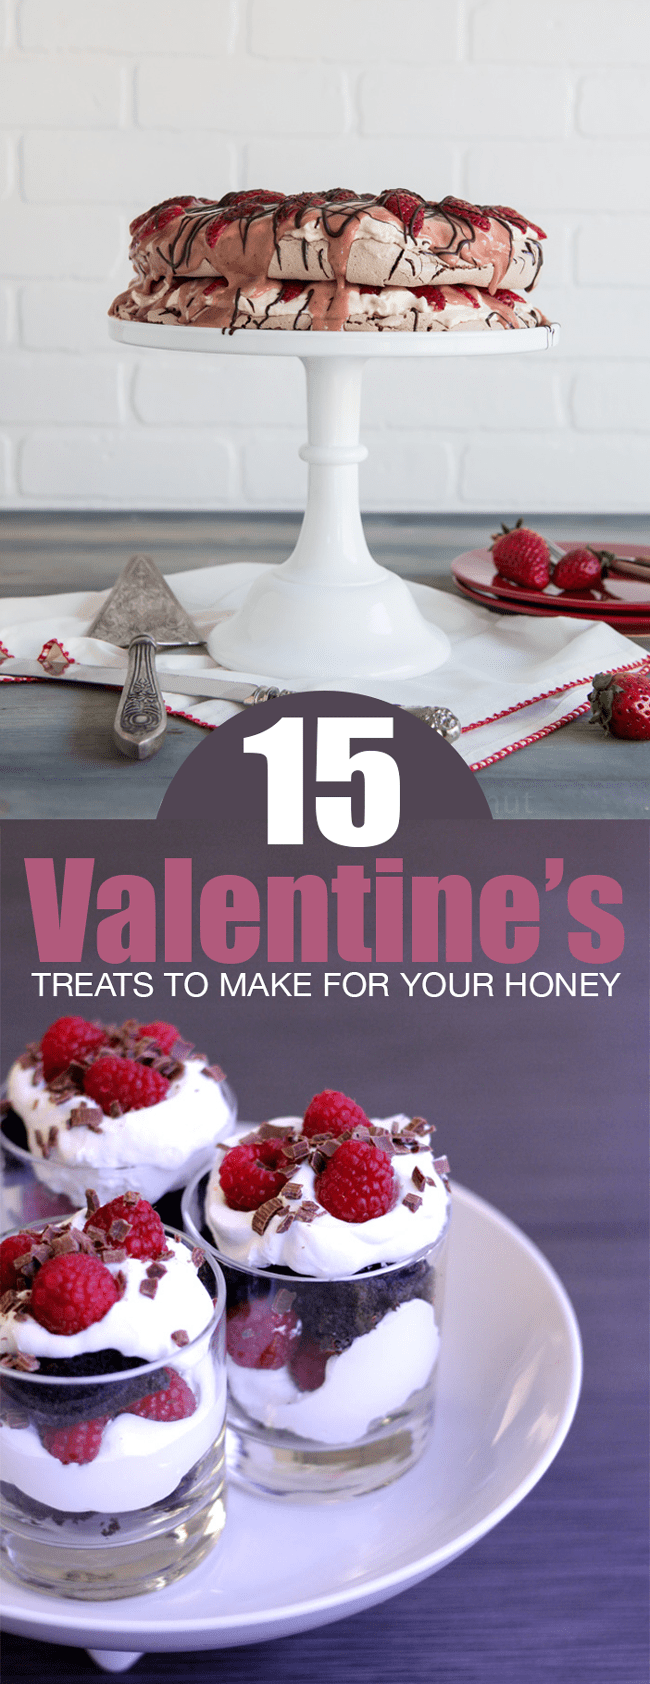 15 Valentine's Day Treats to Make For Your Honey | farmgirlgourmet.com